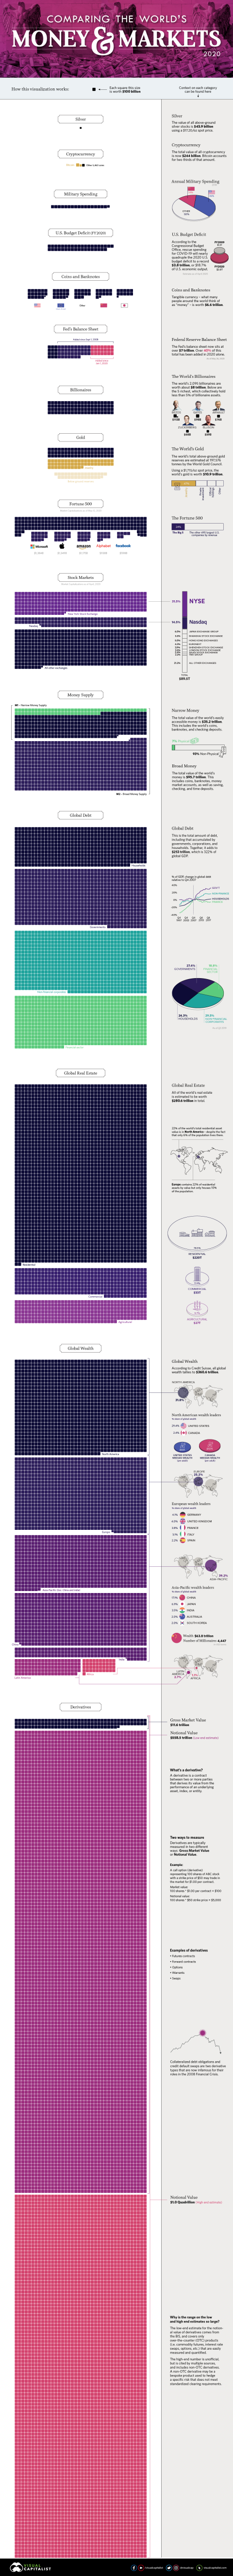 Visualization of World's Money and Markets